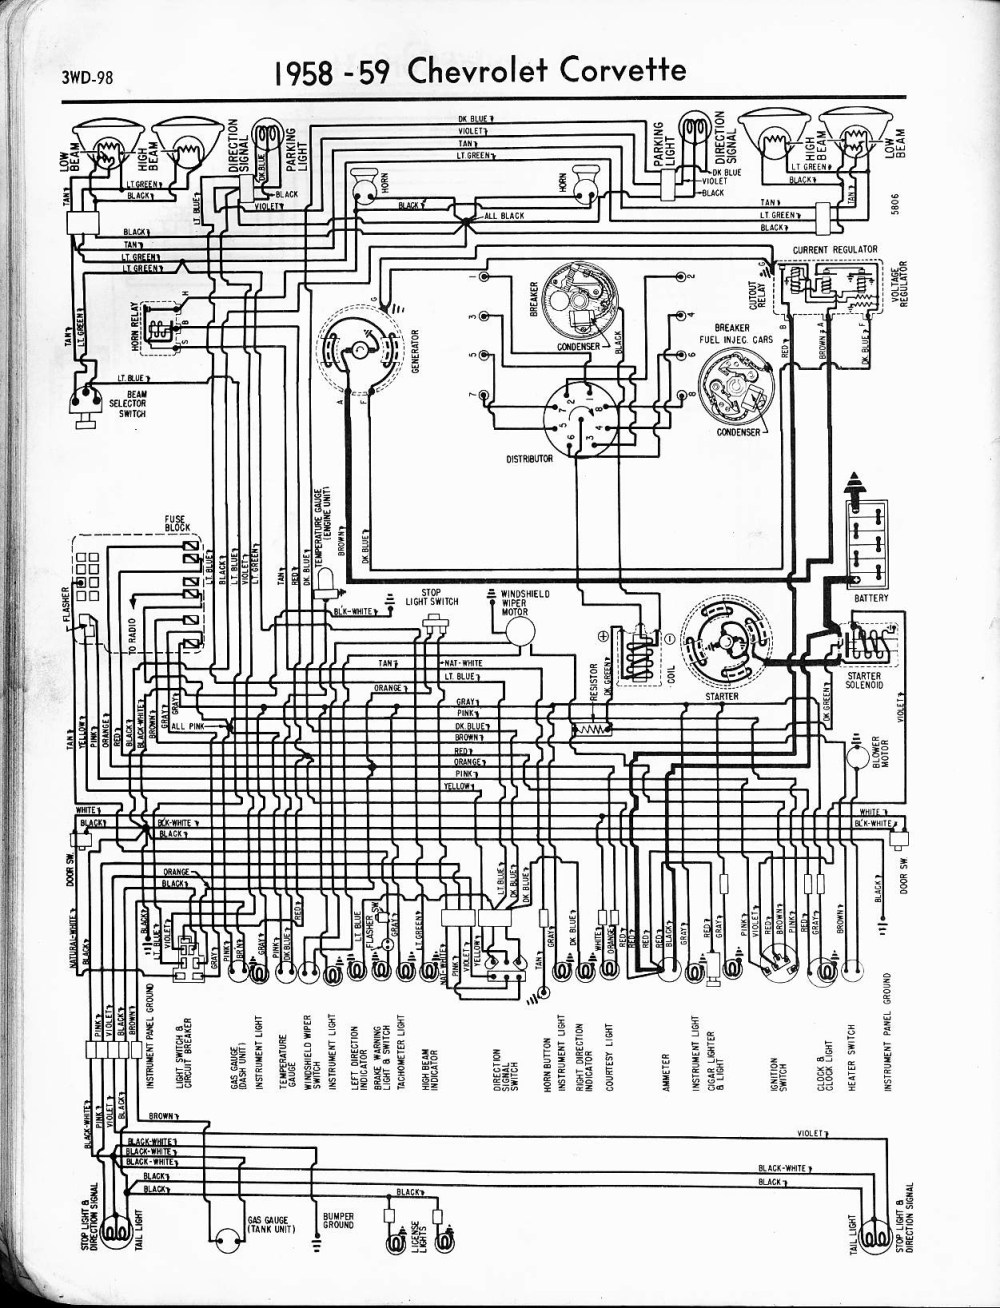 medium resolution of international truck wiring diagram schematic 1958 corvette 2q